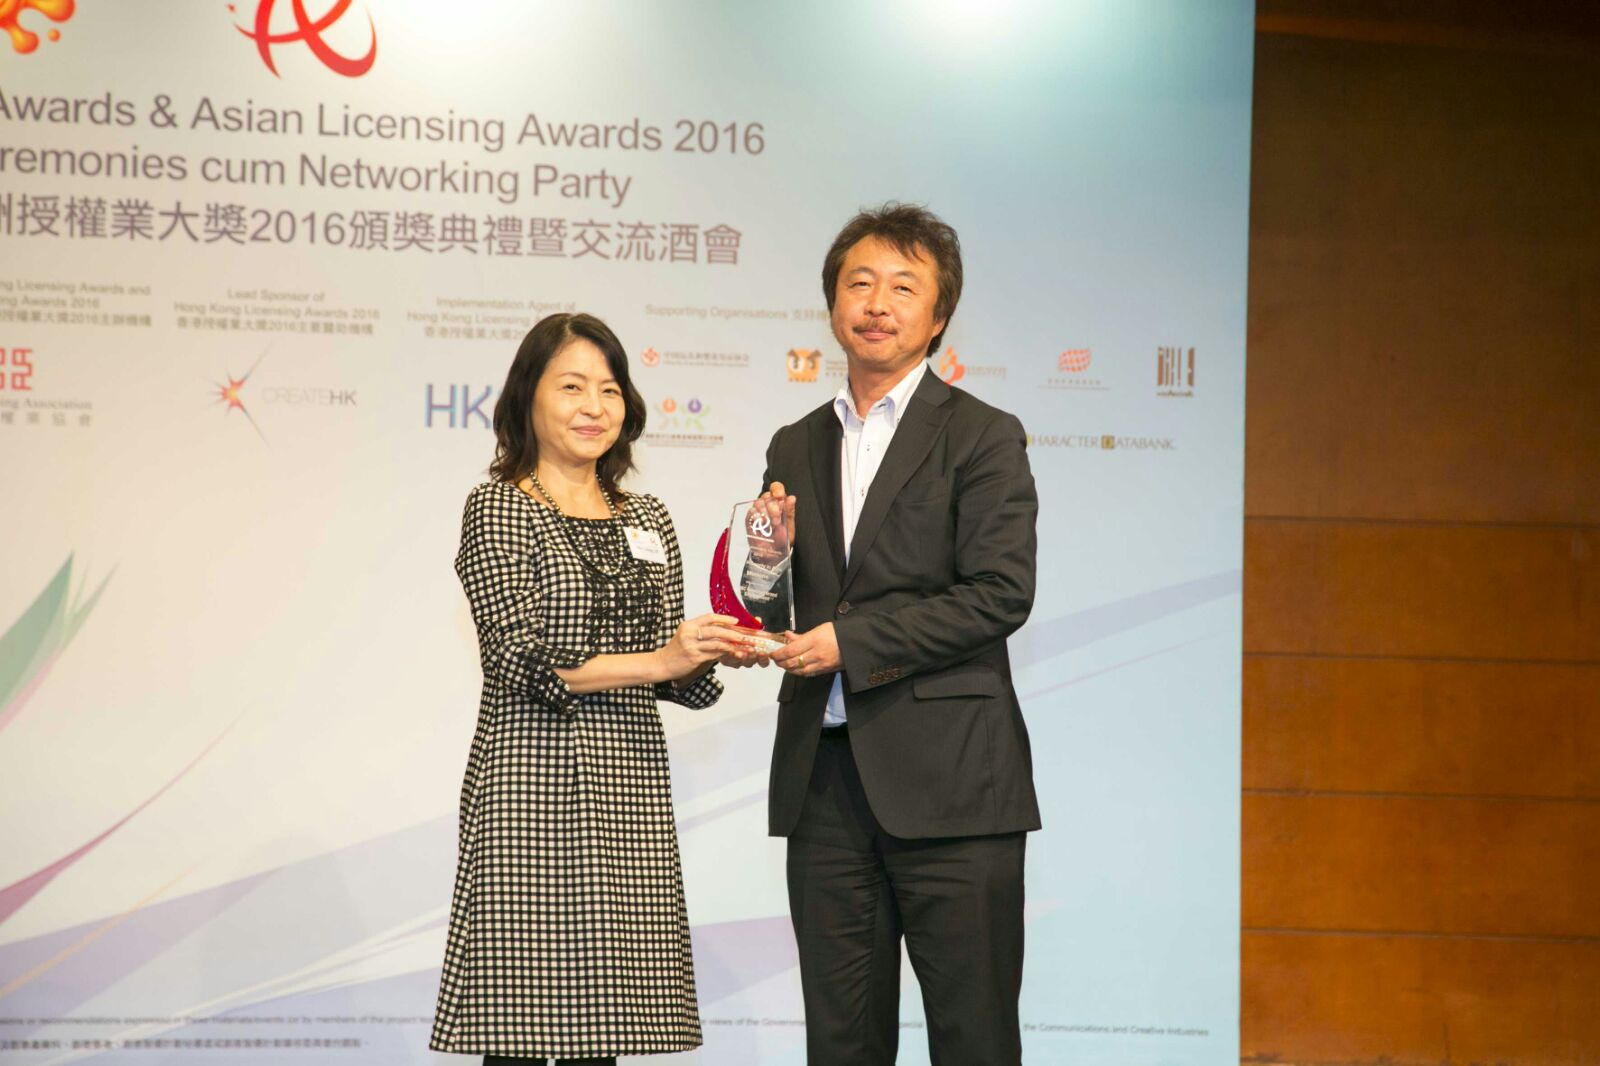 Best Property - Ms Ada LEUNG, JP, Director of Intellectual Property, the Government of the HKSAR